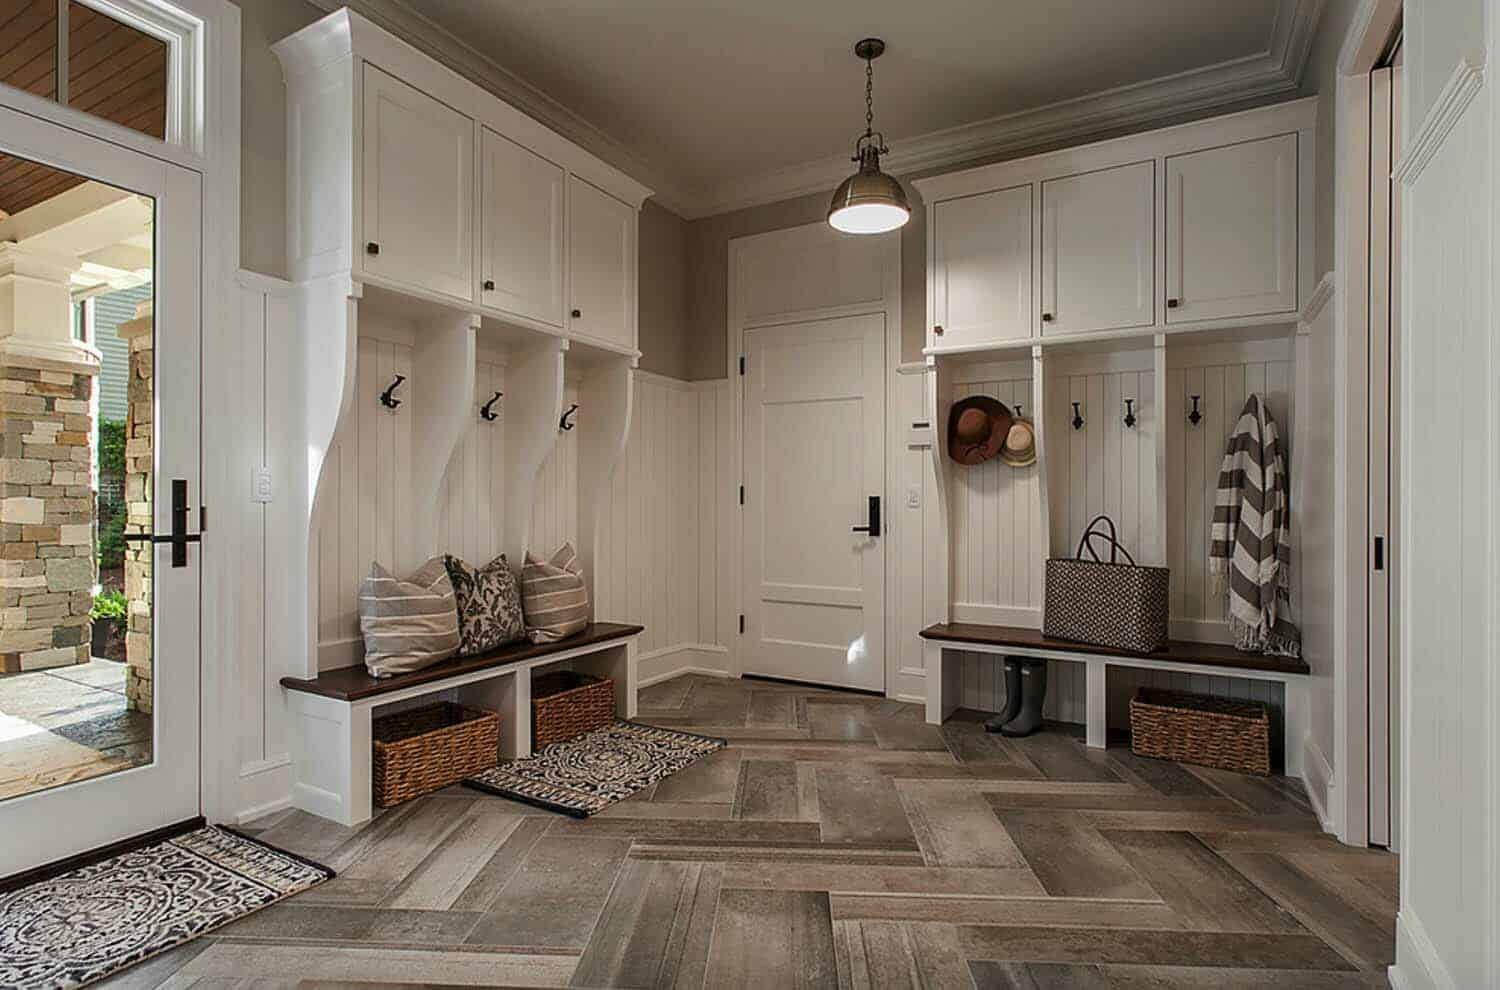 The Wall Paint Color Is Moonshine 2140 60 Bm While Trim White Dove Oc 17 Mudroom Dimensions 8 6 X 12 0 Via Locale Design Build